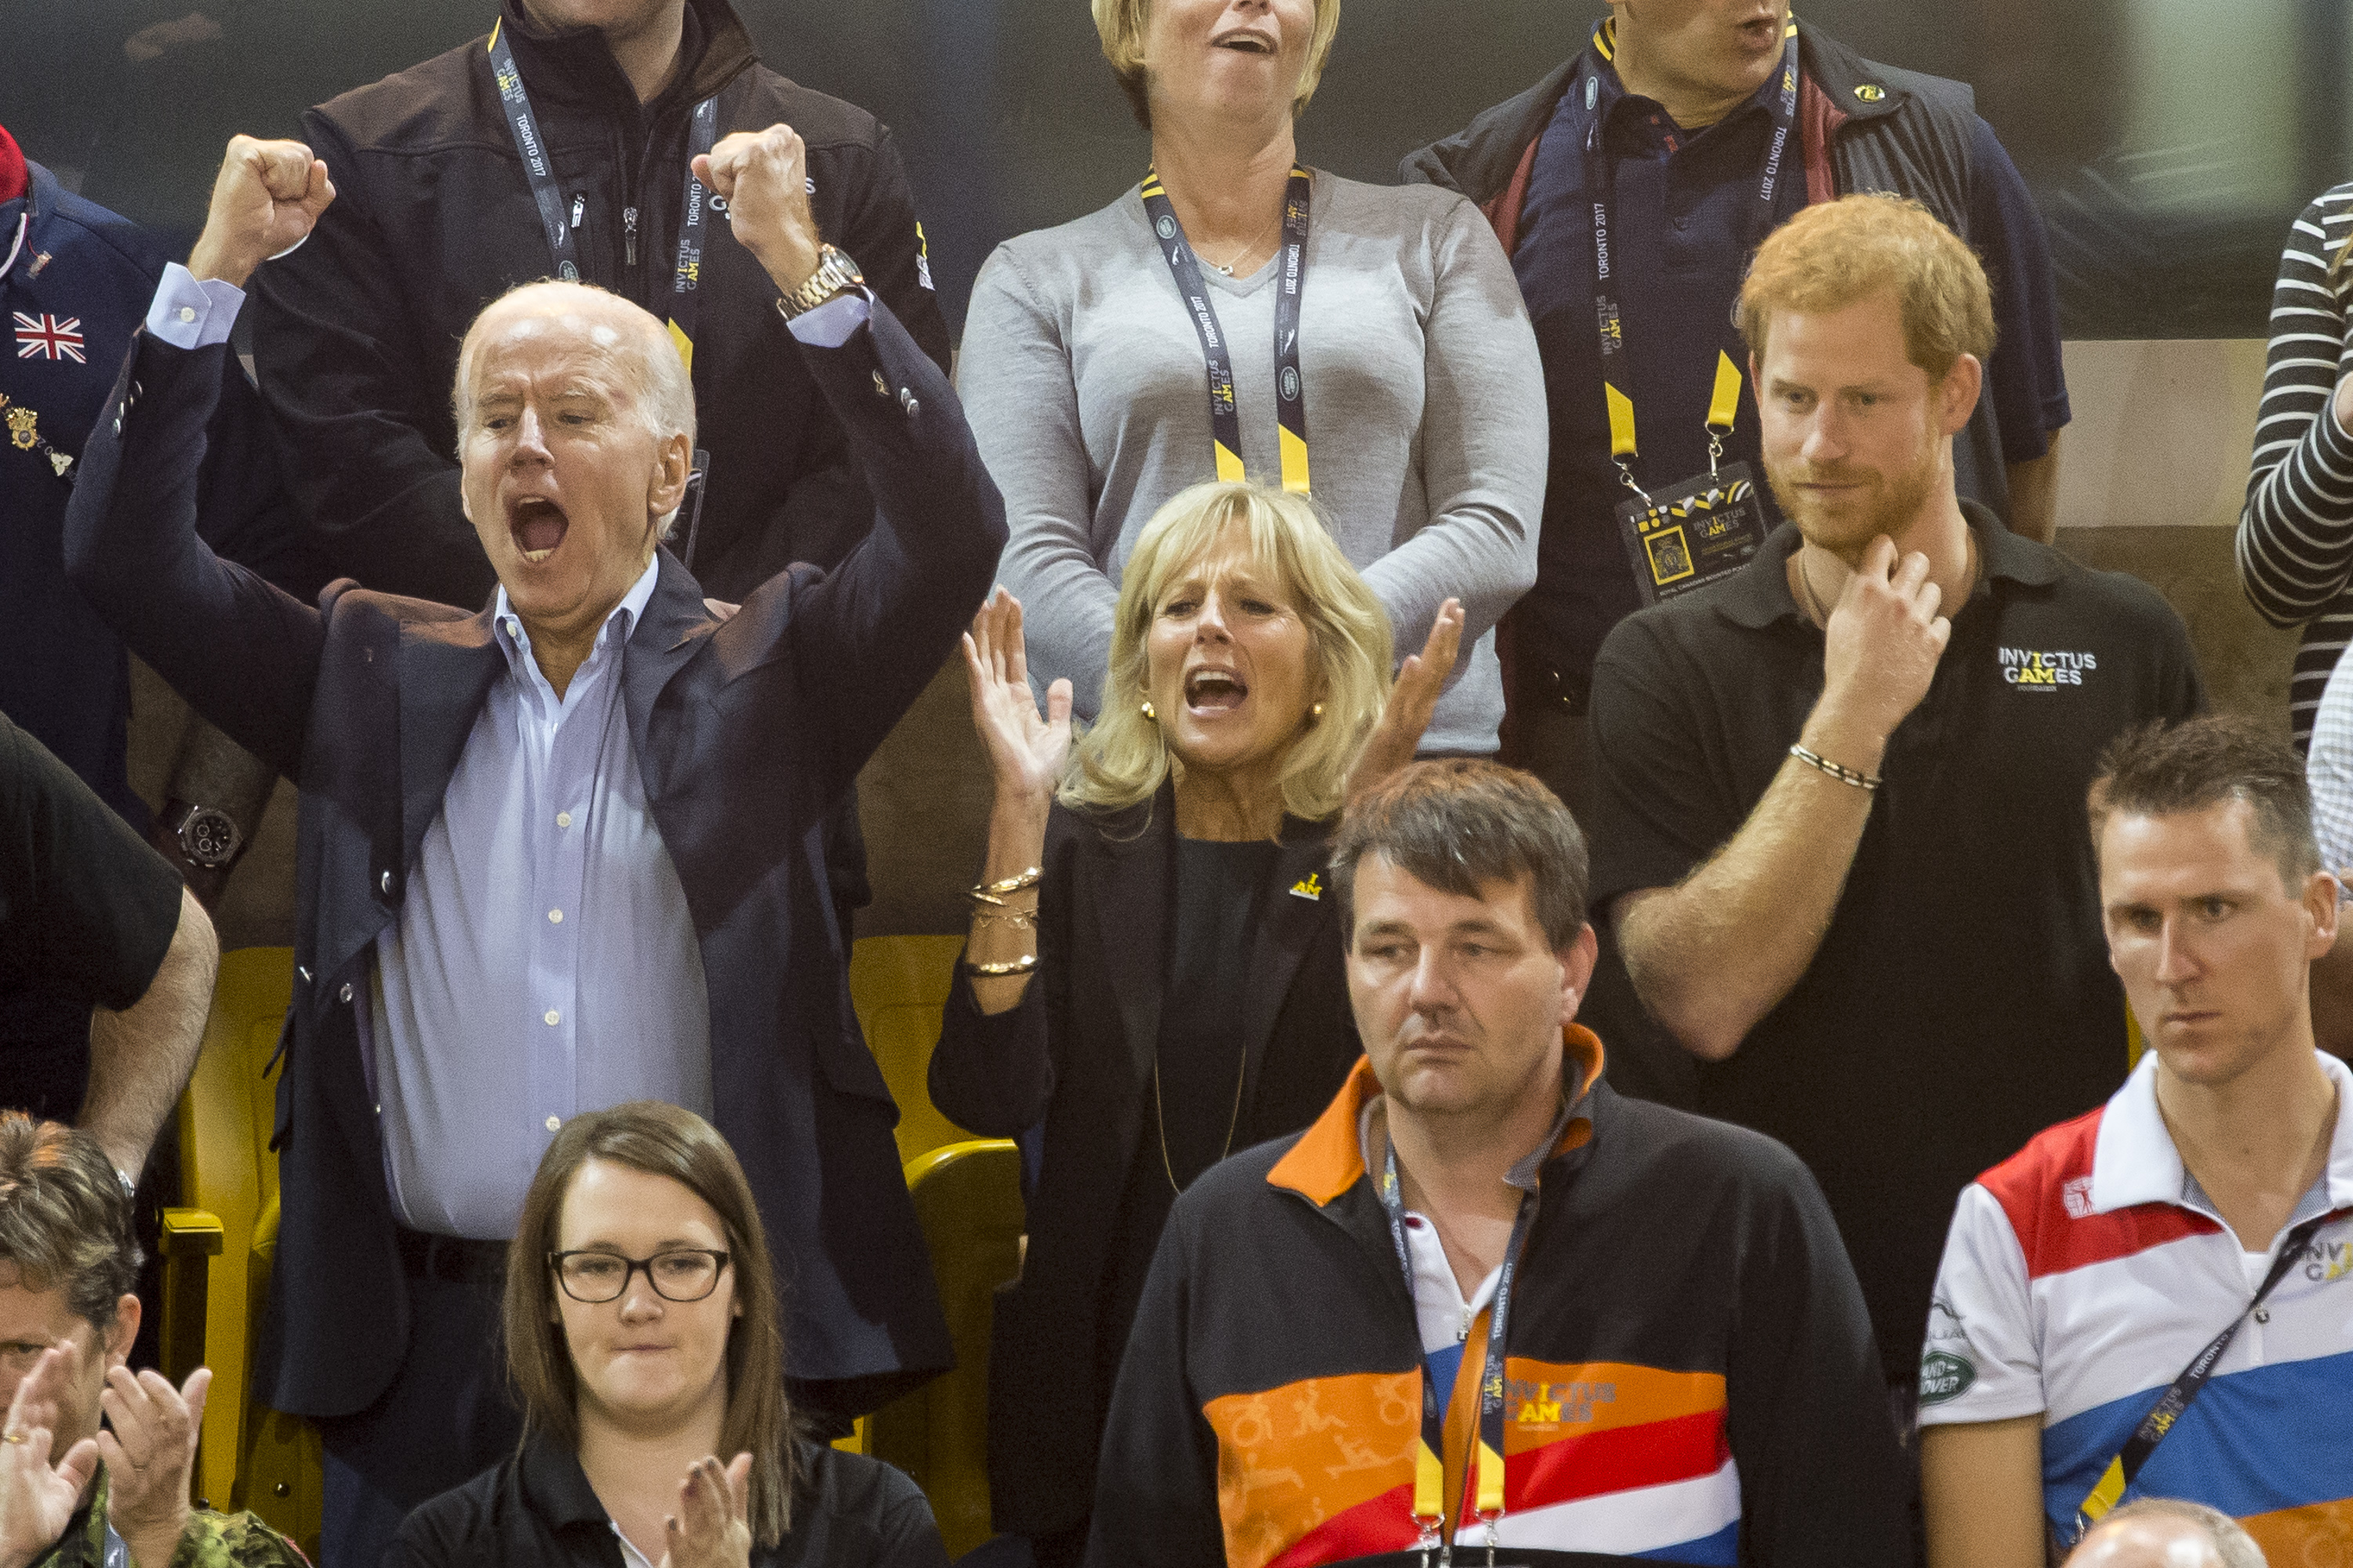 Prince Harry attends Wheel Chair Basket Ball at the Mattamy stadium as part of the Invictus games  Featuring: Joe Biden, Jill Biden, Prince Harry Where: Toronto, Canada When: 30 Sep 2017 Credit: Euan Cherry/WENN.com